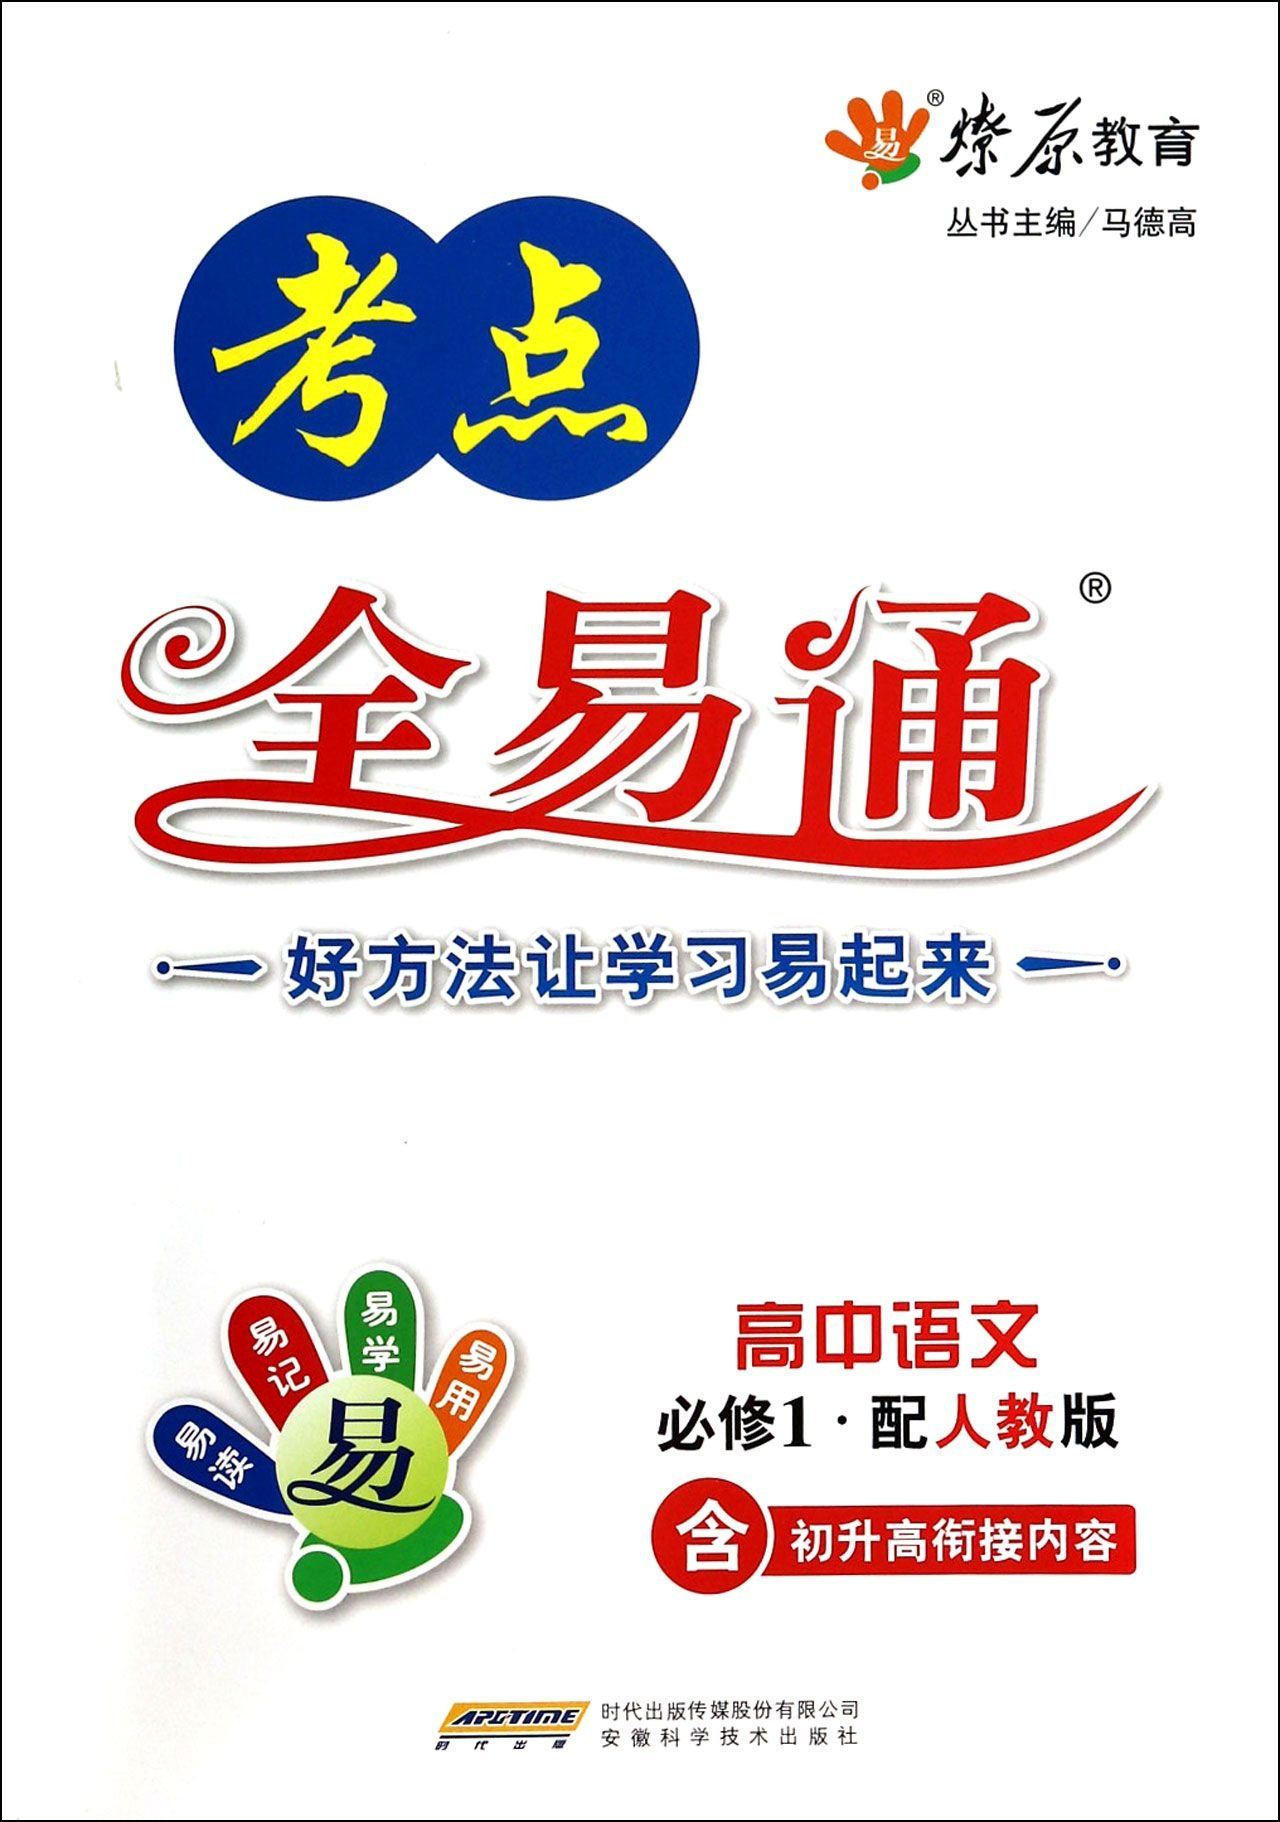 Read Online Language Required 1 - with PEP textbook - all ETS high school textbooks(Chinese Edition) ebook